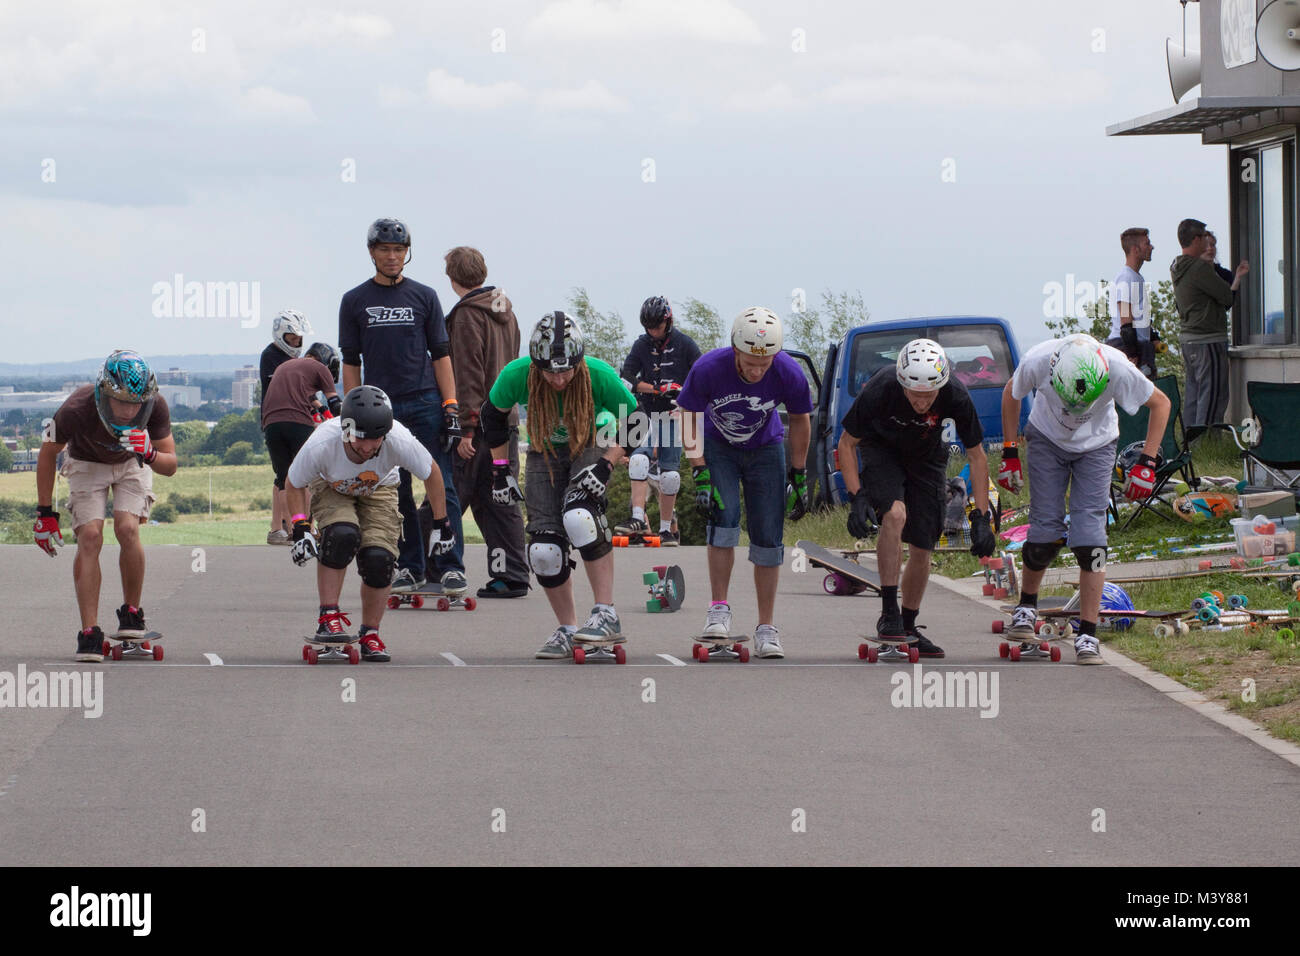 Skateboarders lined up at the start of a downhill race - Stock Image